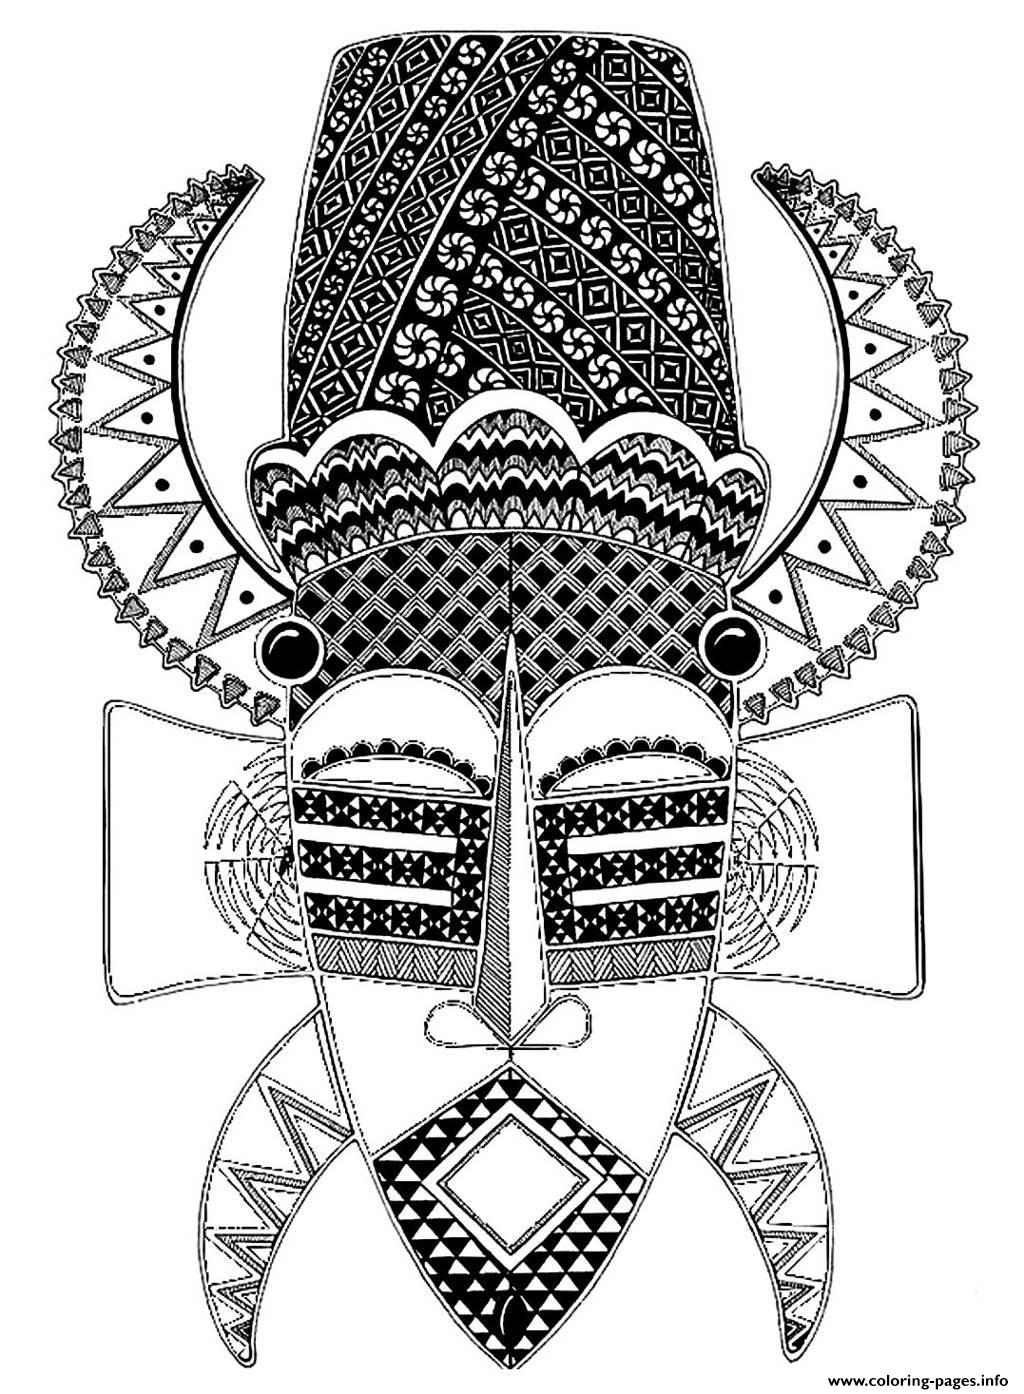 african mandala coloring pages african scorpion mandala mandala coloring mandala african coloring mandala pages